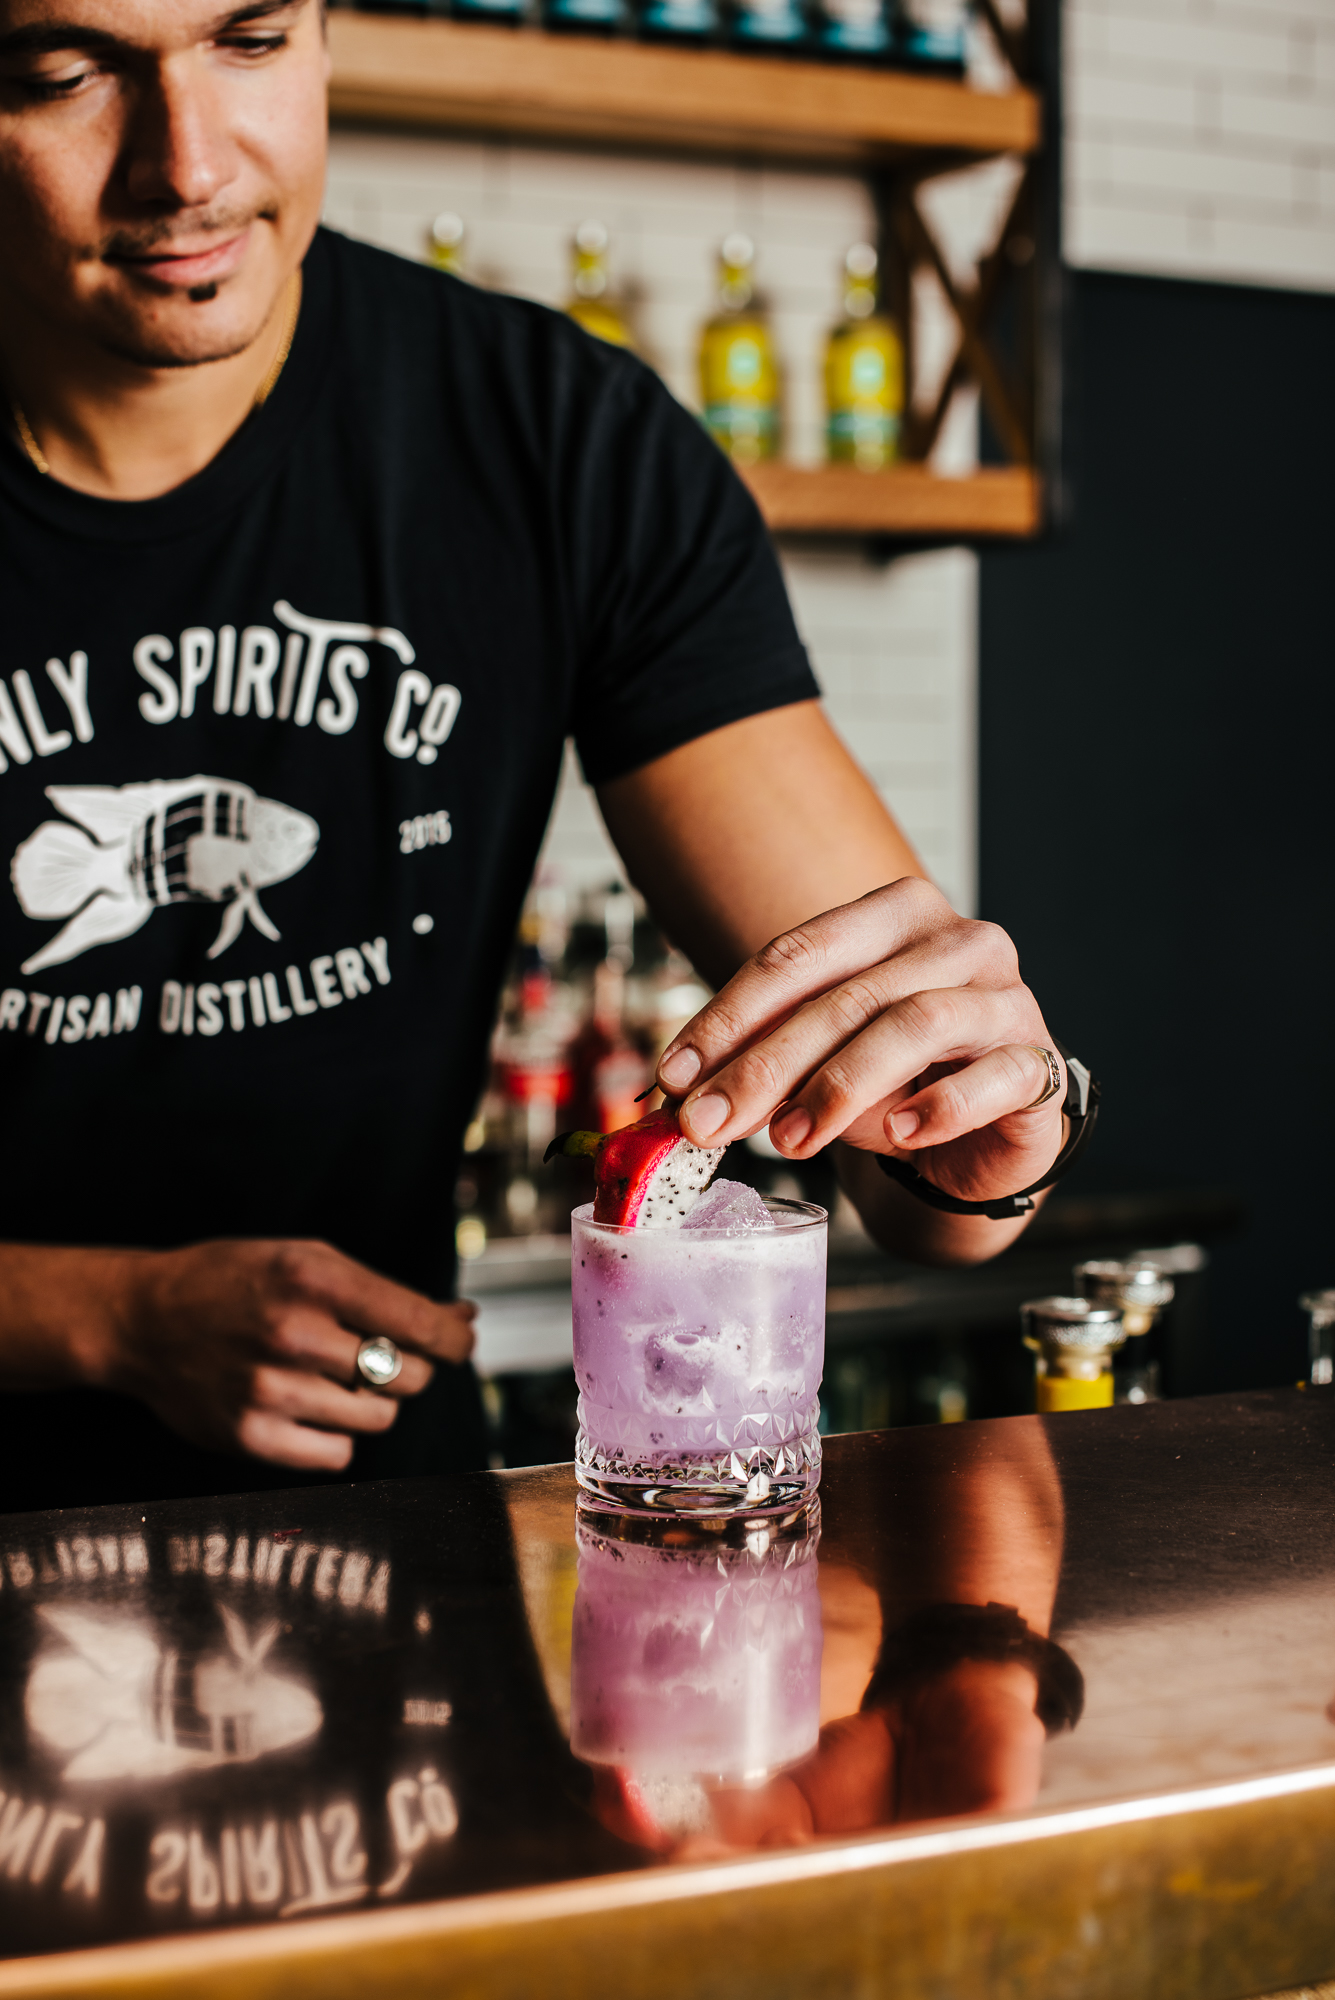 Not your average G&T — Manly Spirit Co